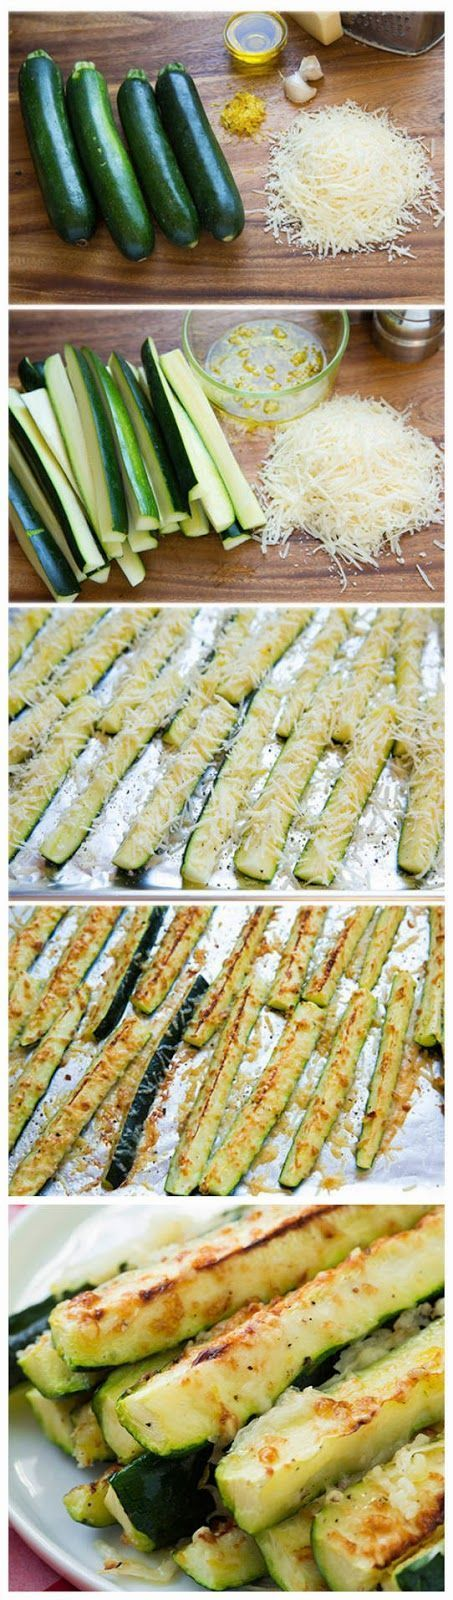 "Garlic, Lemon & Parmesan Oven-Roasted Zucchini. A pinner: ""You are going to LOVE the flavor of this zucchini.....they are incredibly easy to make!"""